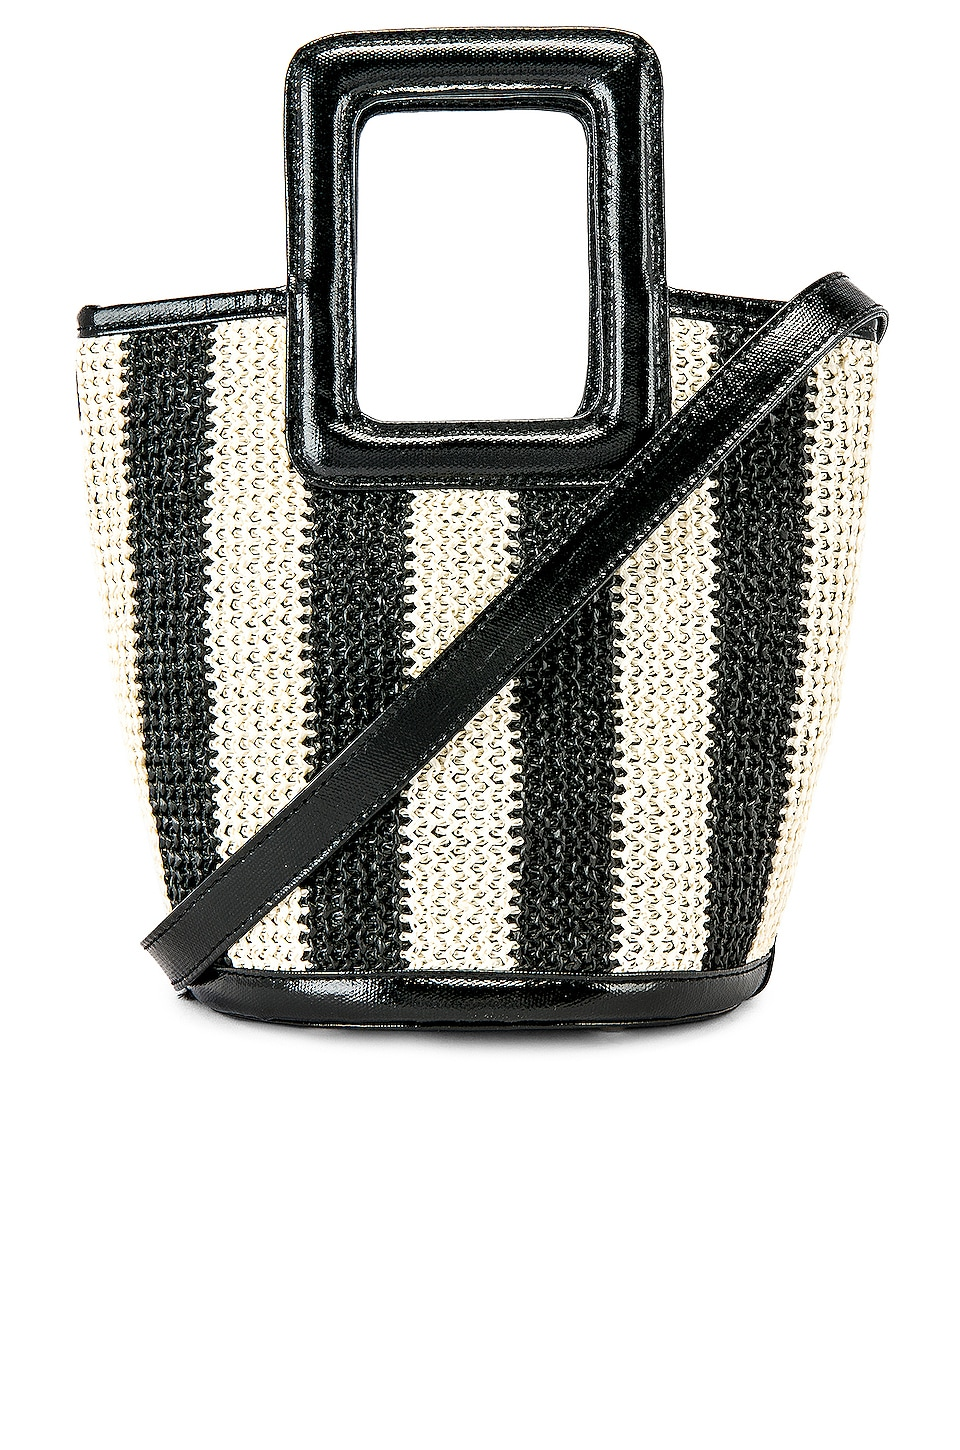 Solid & Striped Pookie Crochet Tote in Black & White Stripe